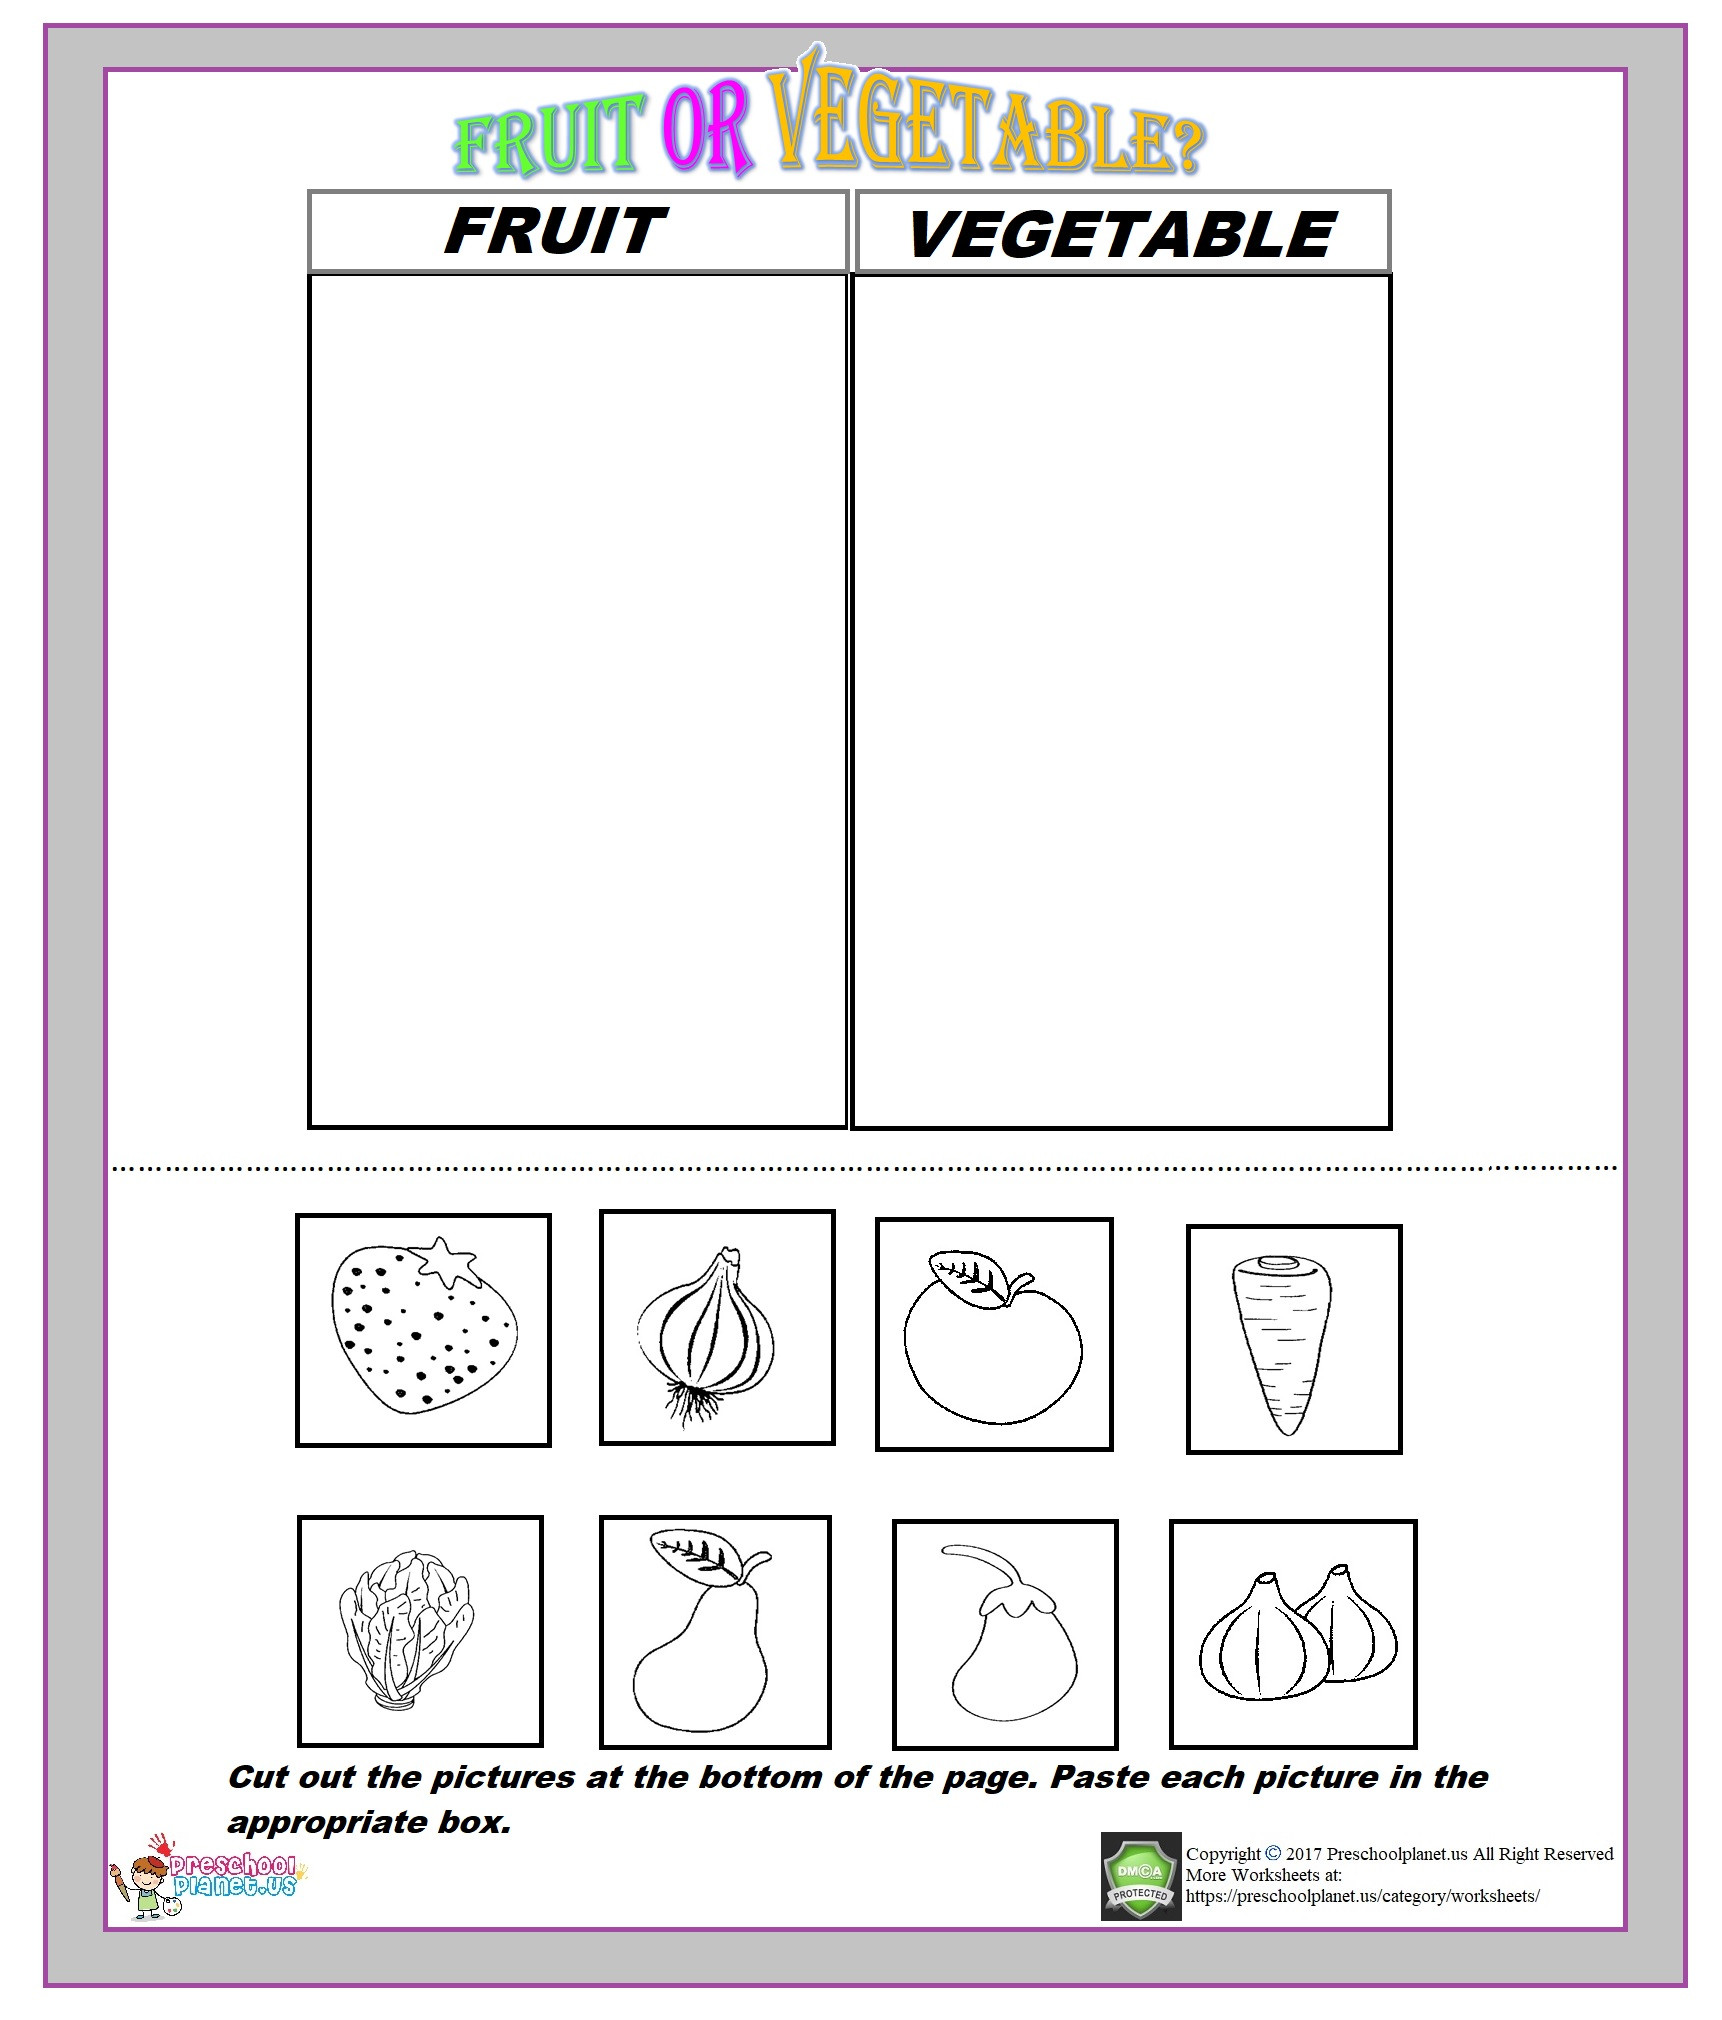 Vegetable Worksheets for Preschool Fruit or Ve Able Worksheet – Preschoolplanet